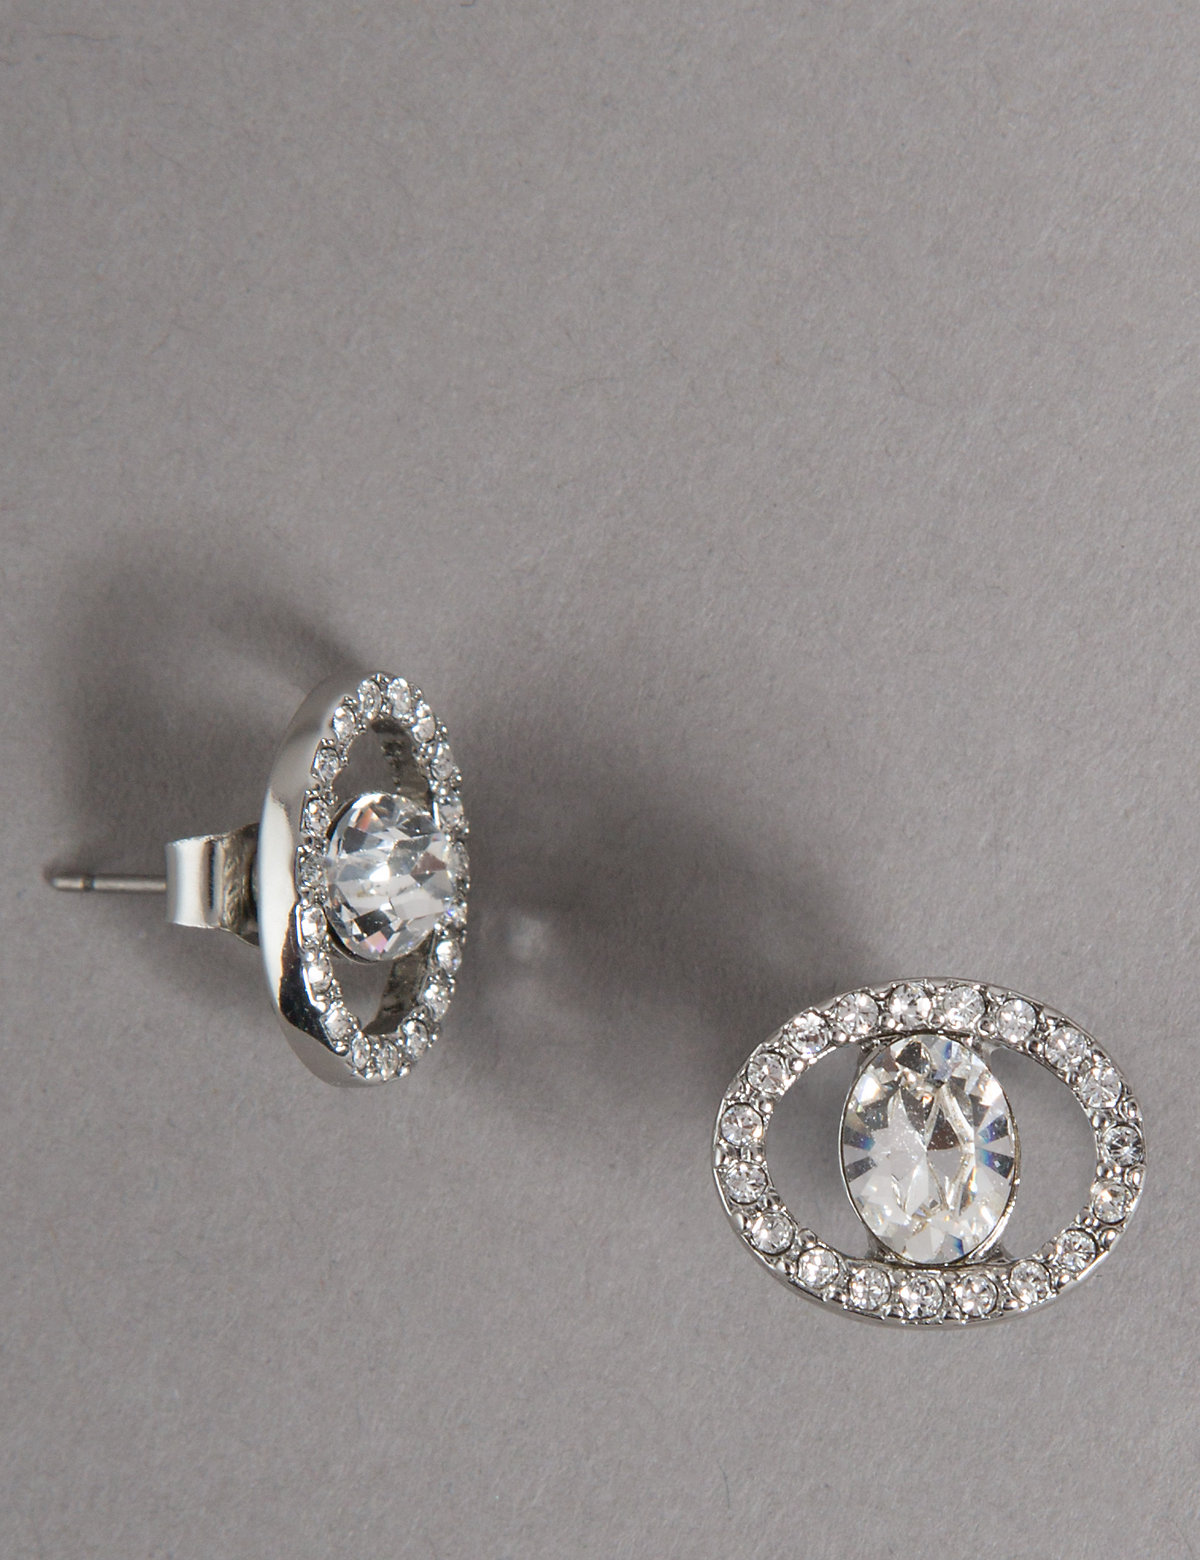 Autograph Circular Sparkling Earrings MADE WITH SWAROVSKI ELEMENTS